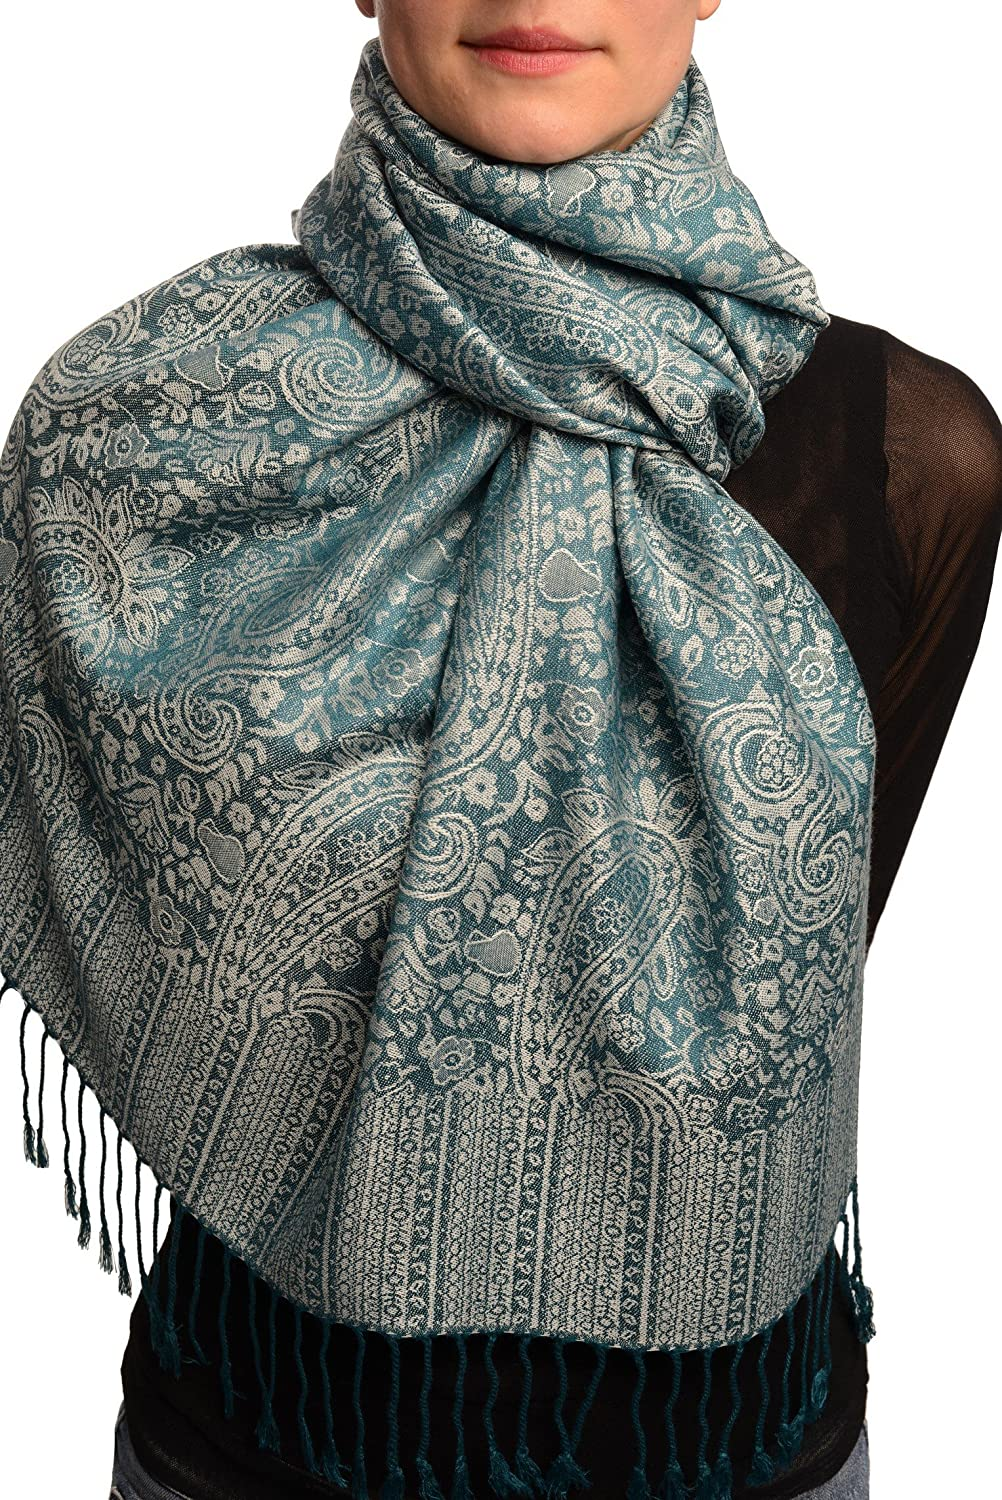 Prussian Blue & Grey Paisleys Pashmina Feel With Tassels - Scarf